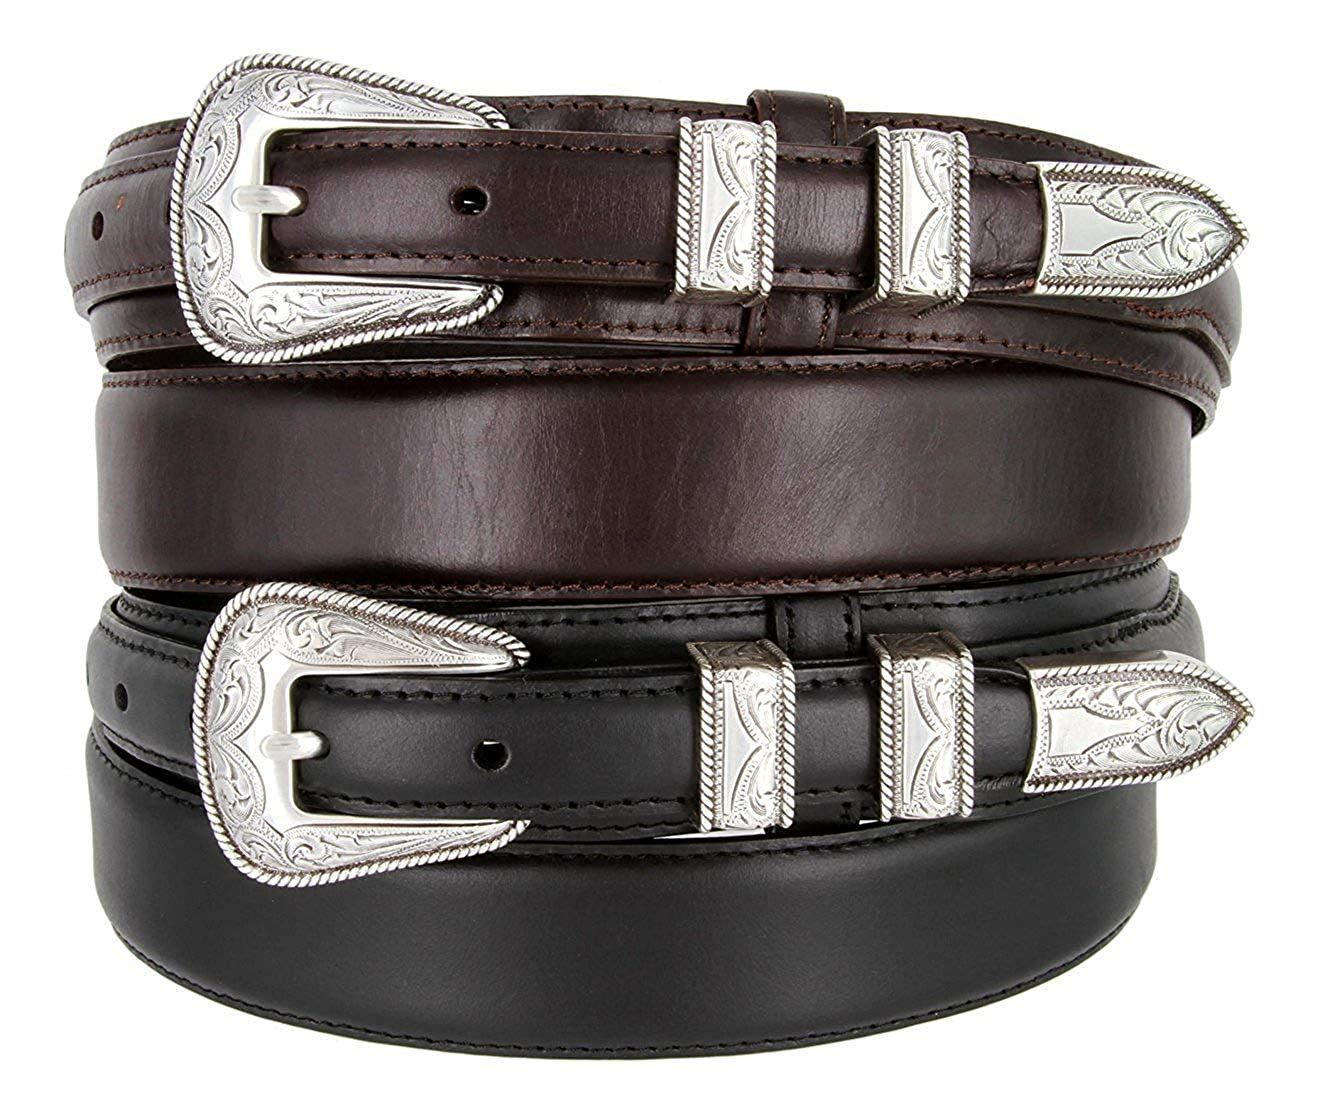 BBBelts Men 1-3//8 Wide Oil Tanned Smooth Leather Engraved Silver Buckle Belt